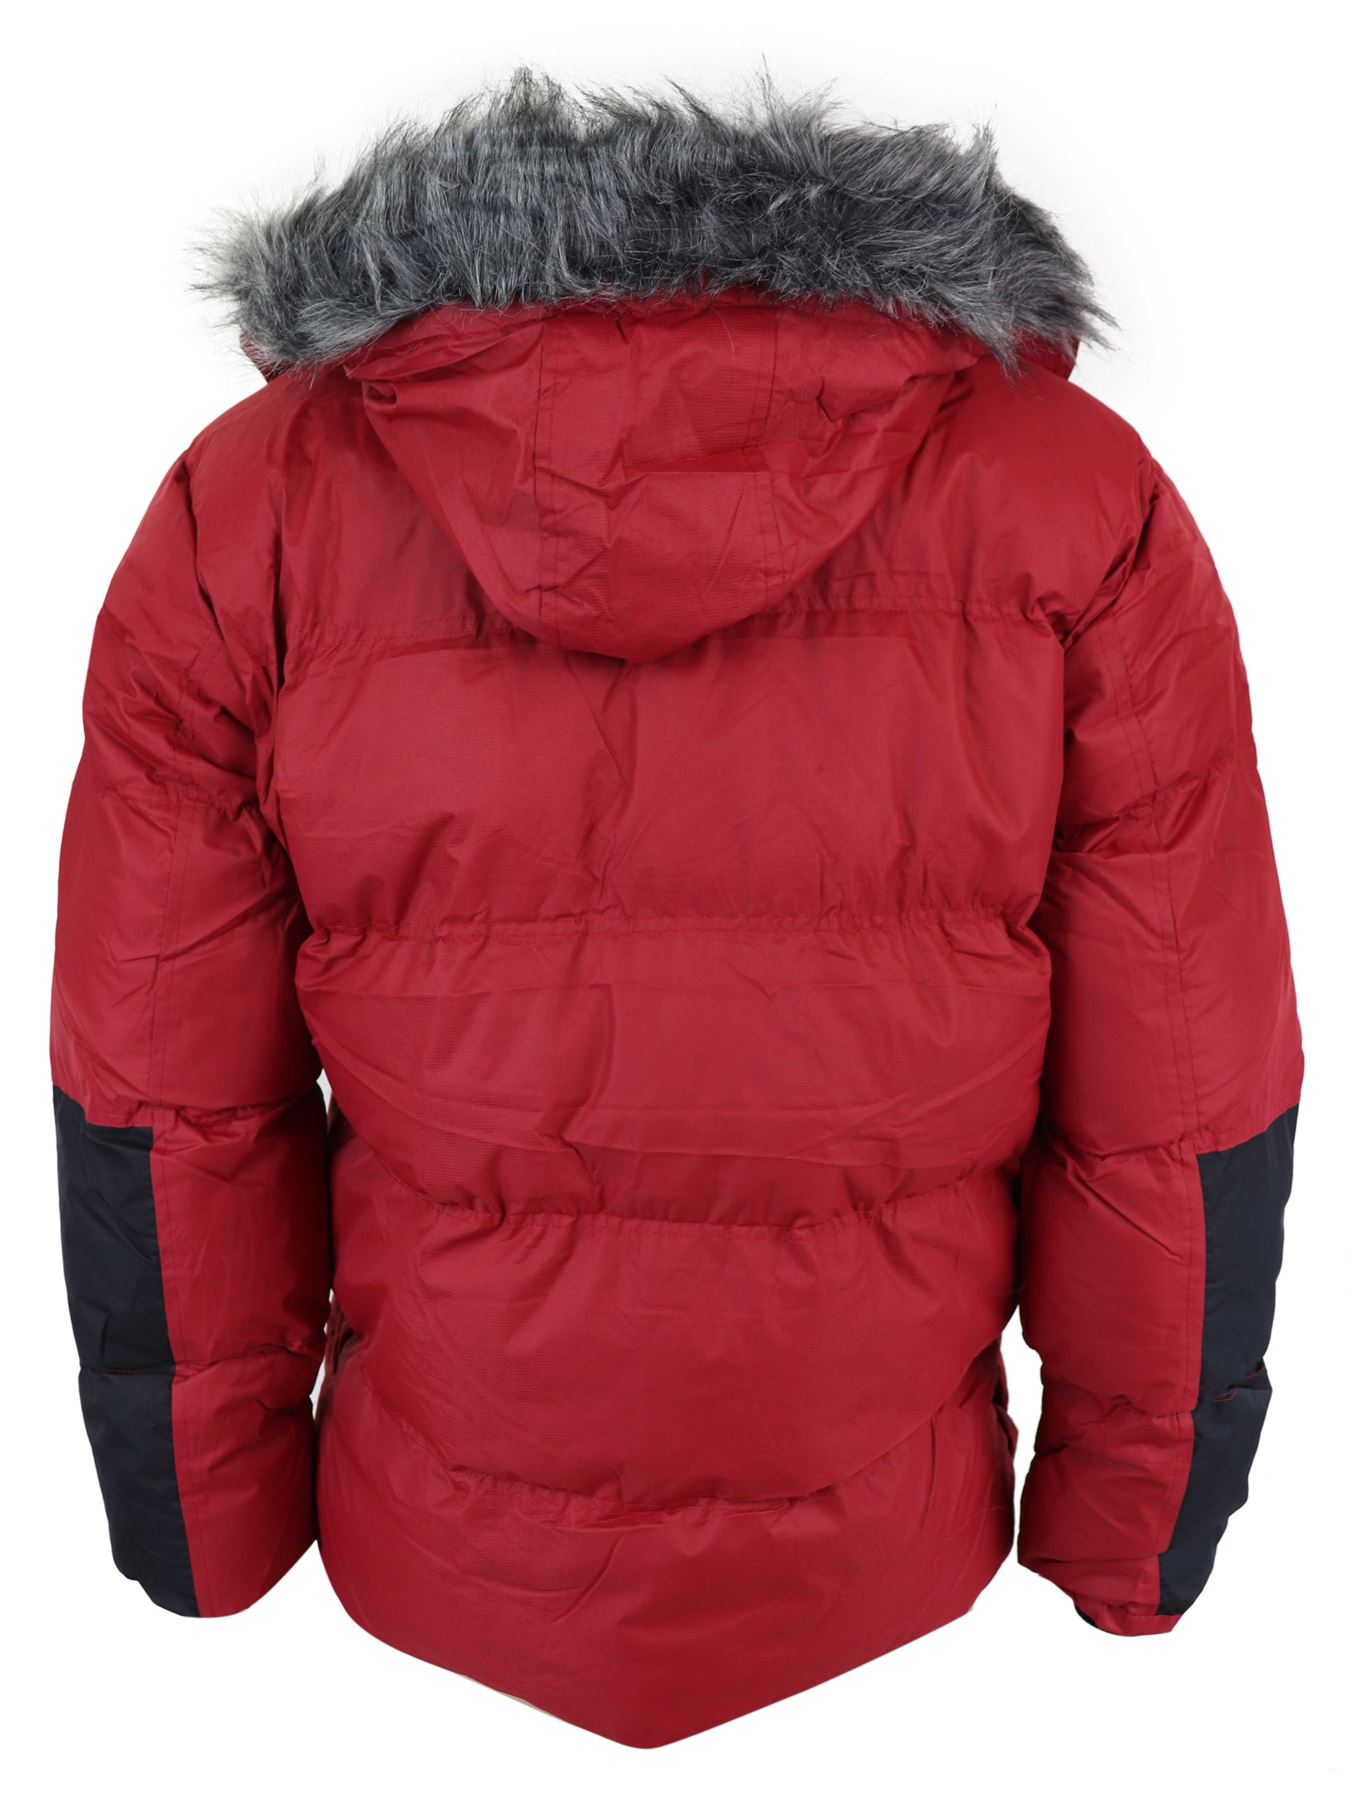 6e8208db9 Details about Mens Padded Puffer Parka Jacket Red Grey Warm Fur Hood Autumn  Winter